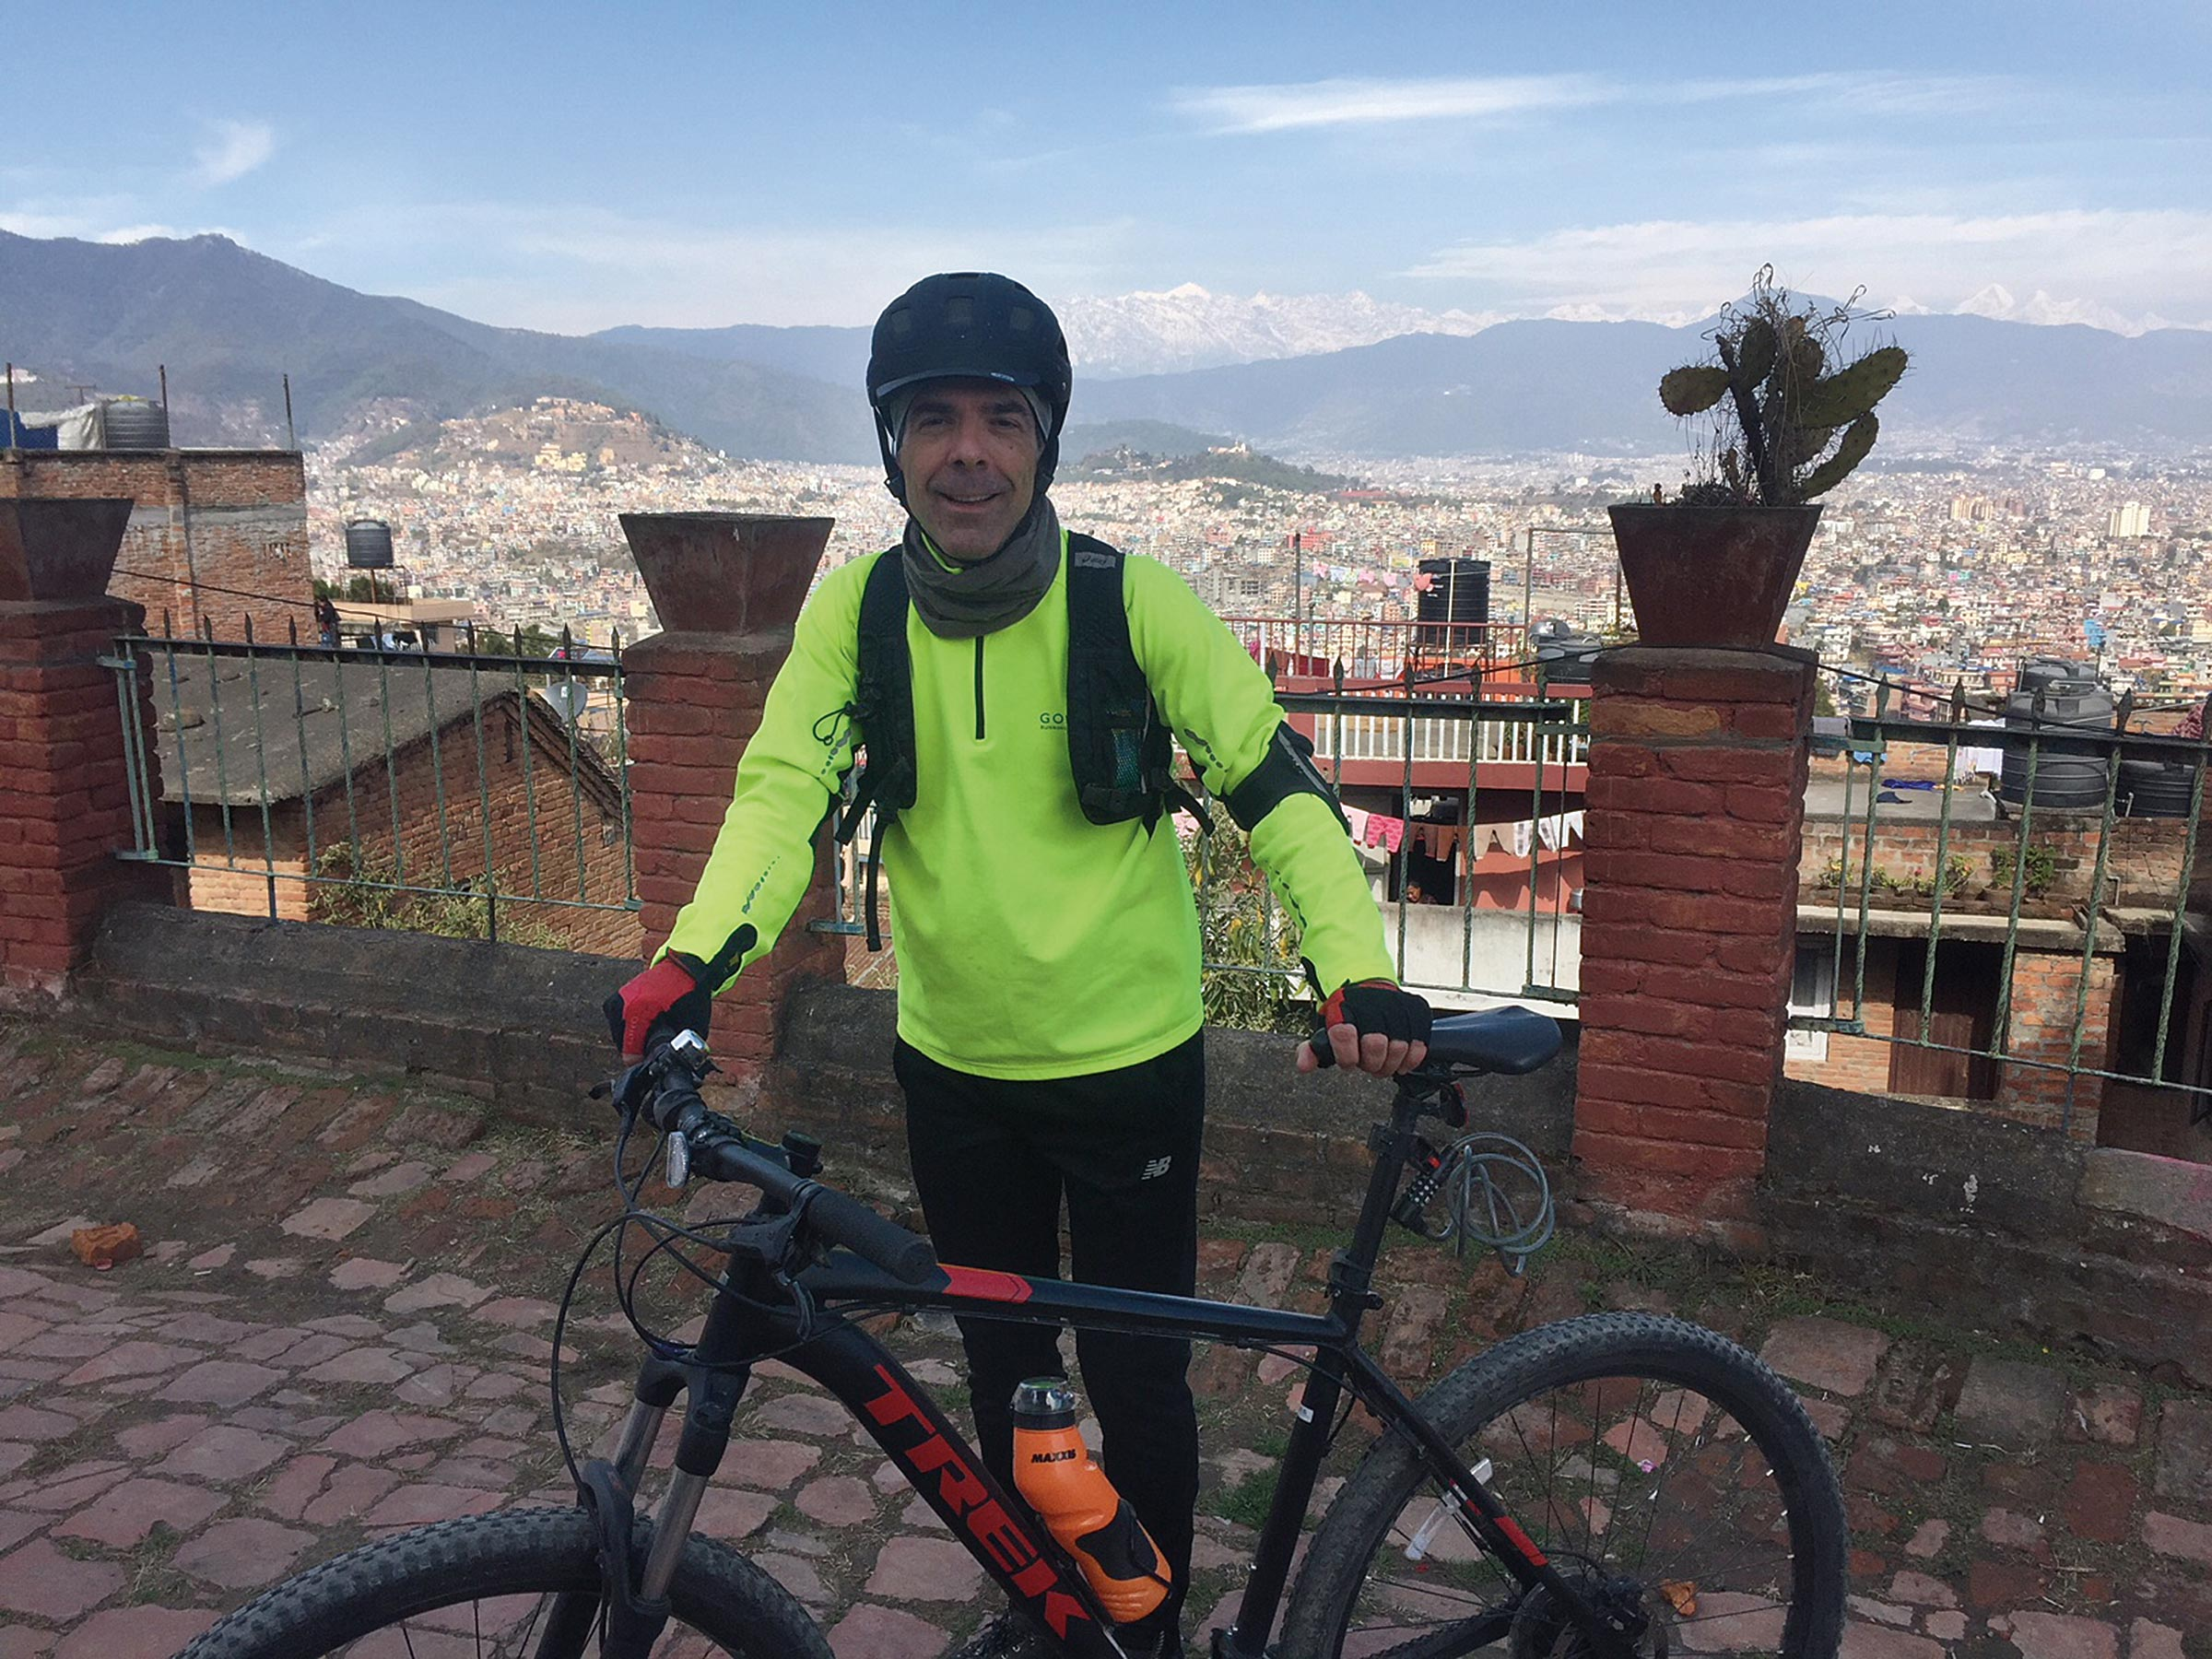 Food, France, and Nepal: Getting to know the Cycling Ambassador